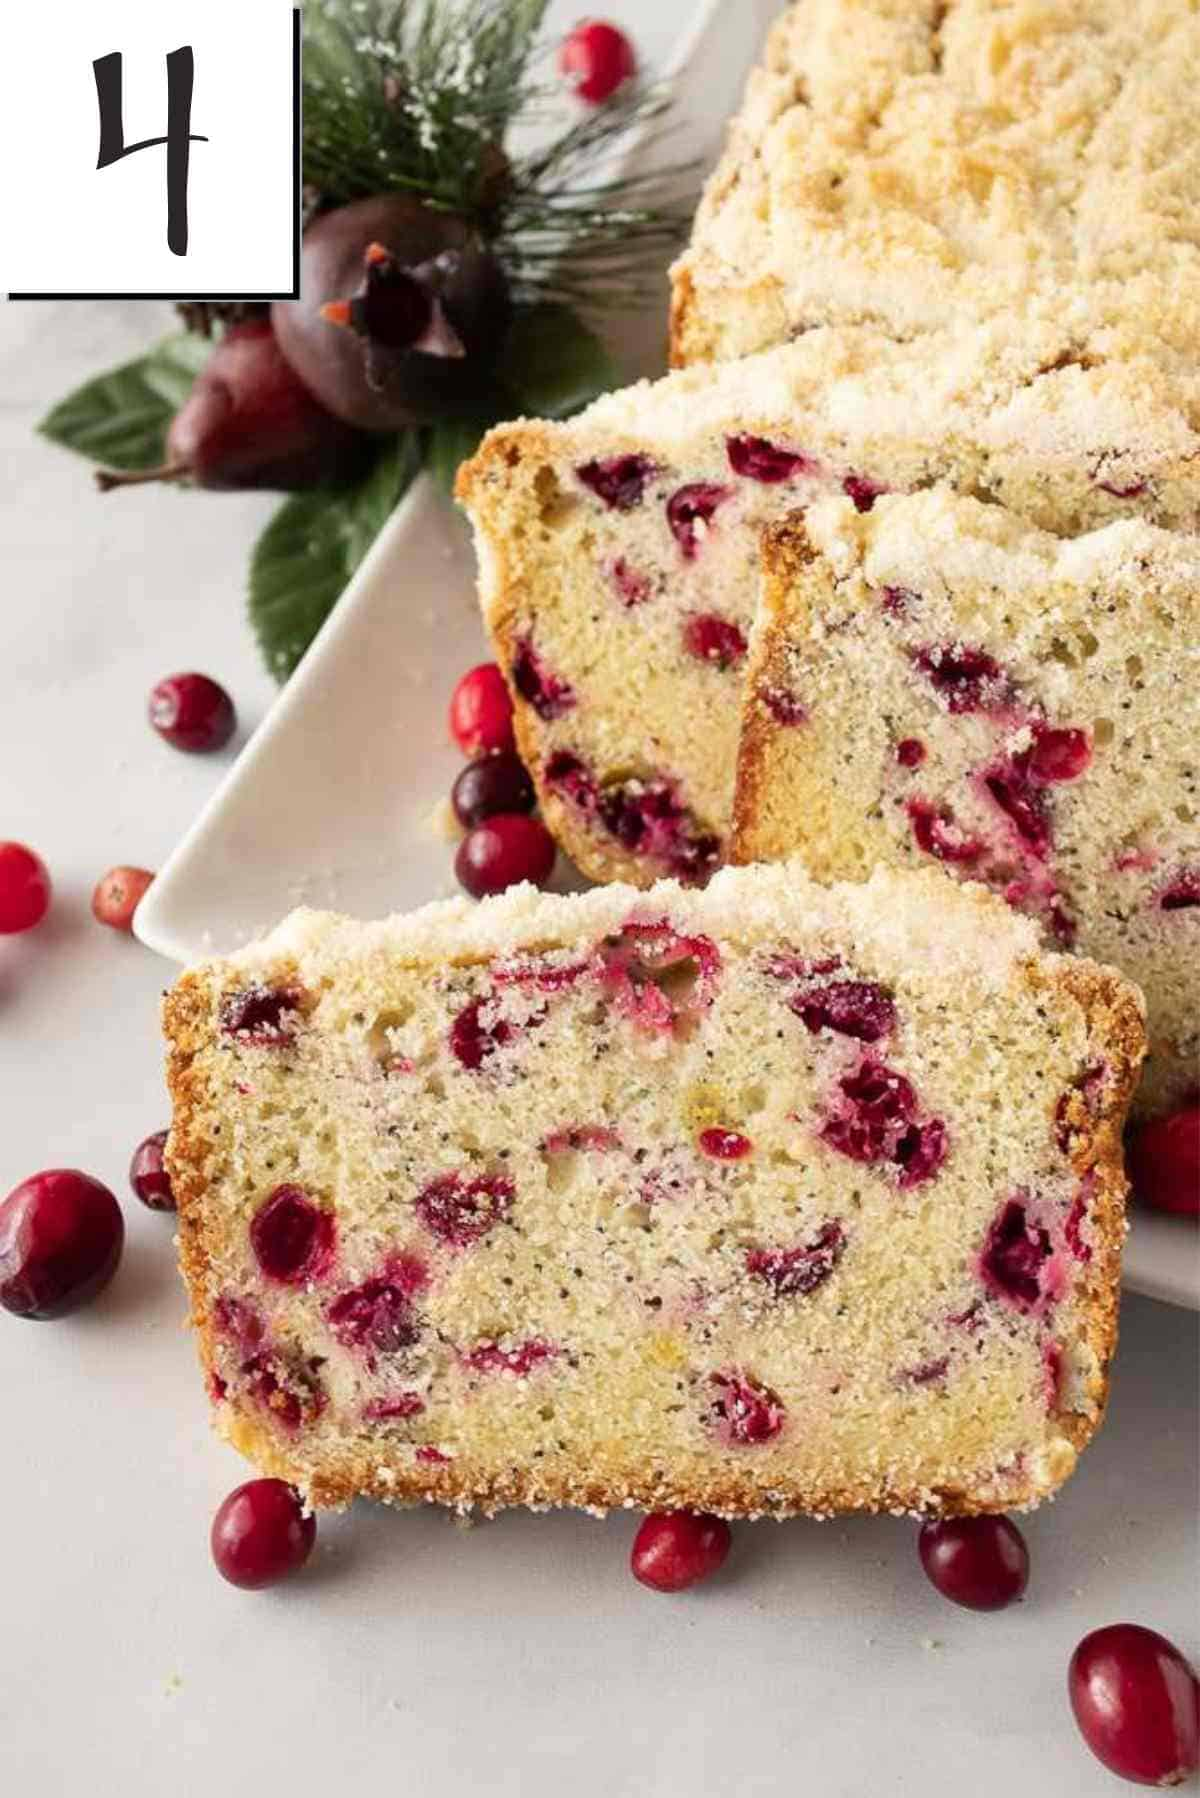 A baked loaf of cranberry poppy seed bread on a decorative plate garnished with fresh cranberries